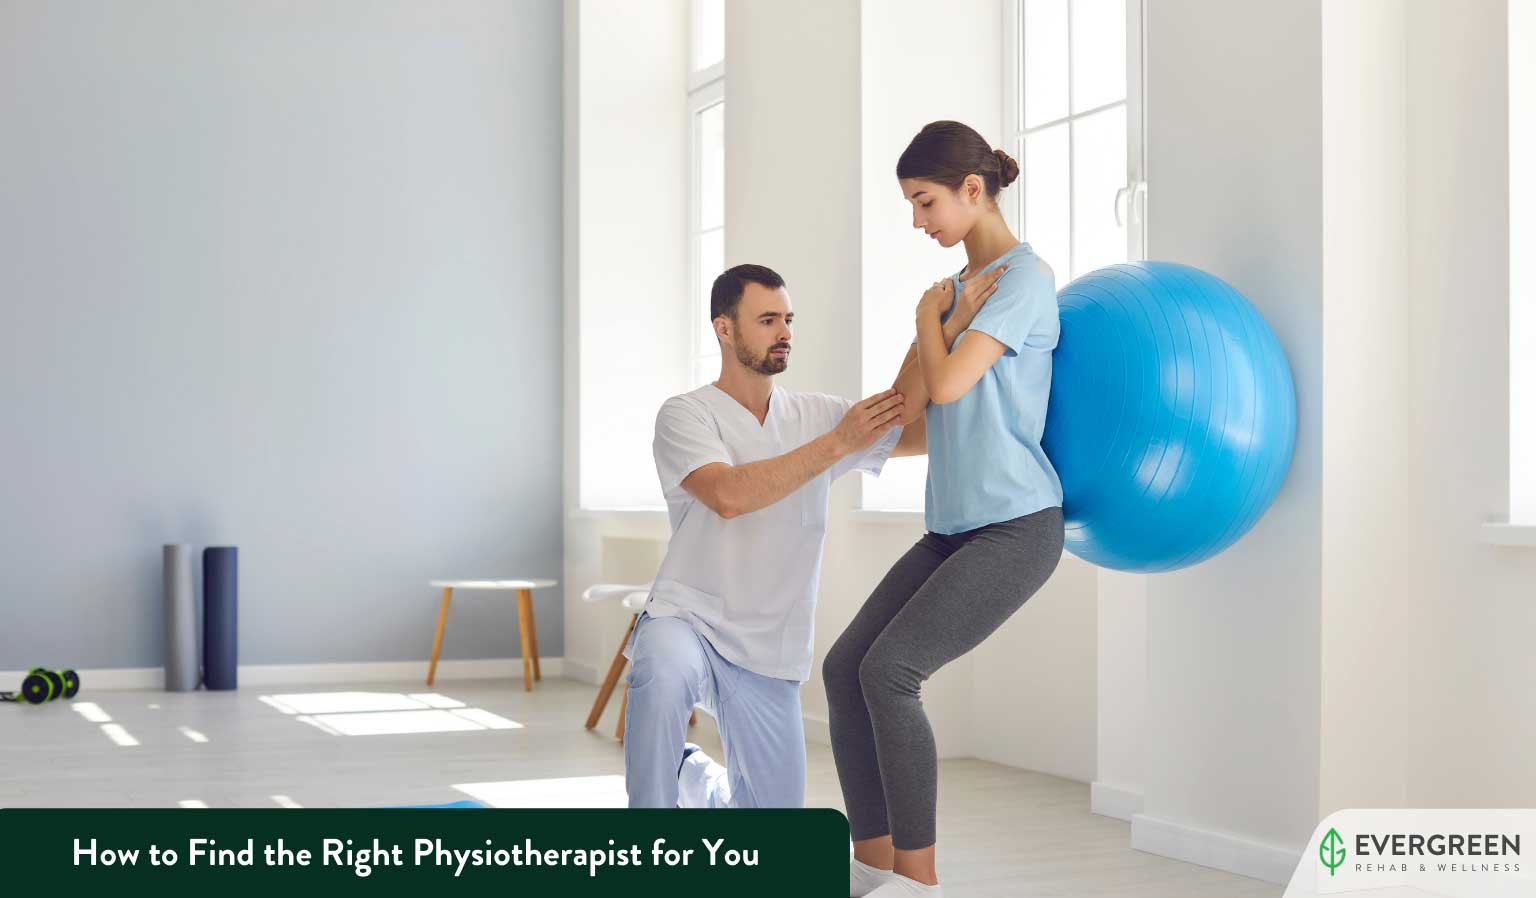 How to Find the Right Physiotherapist for You